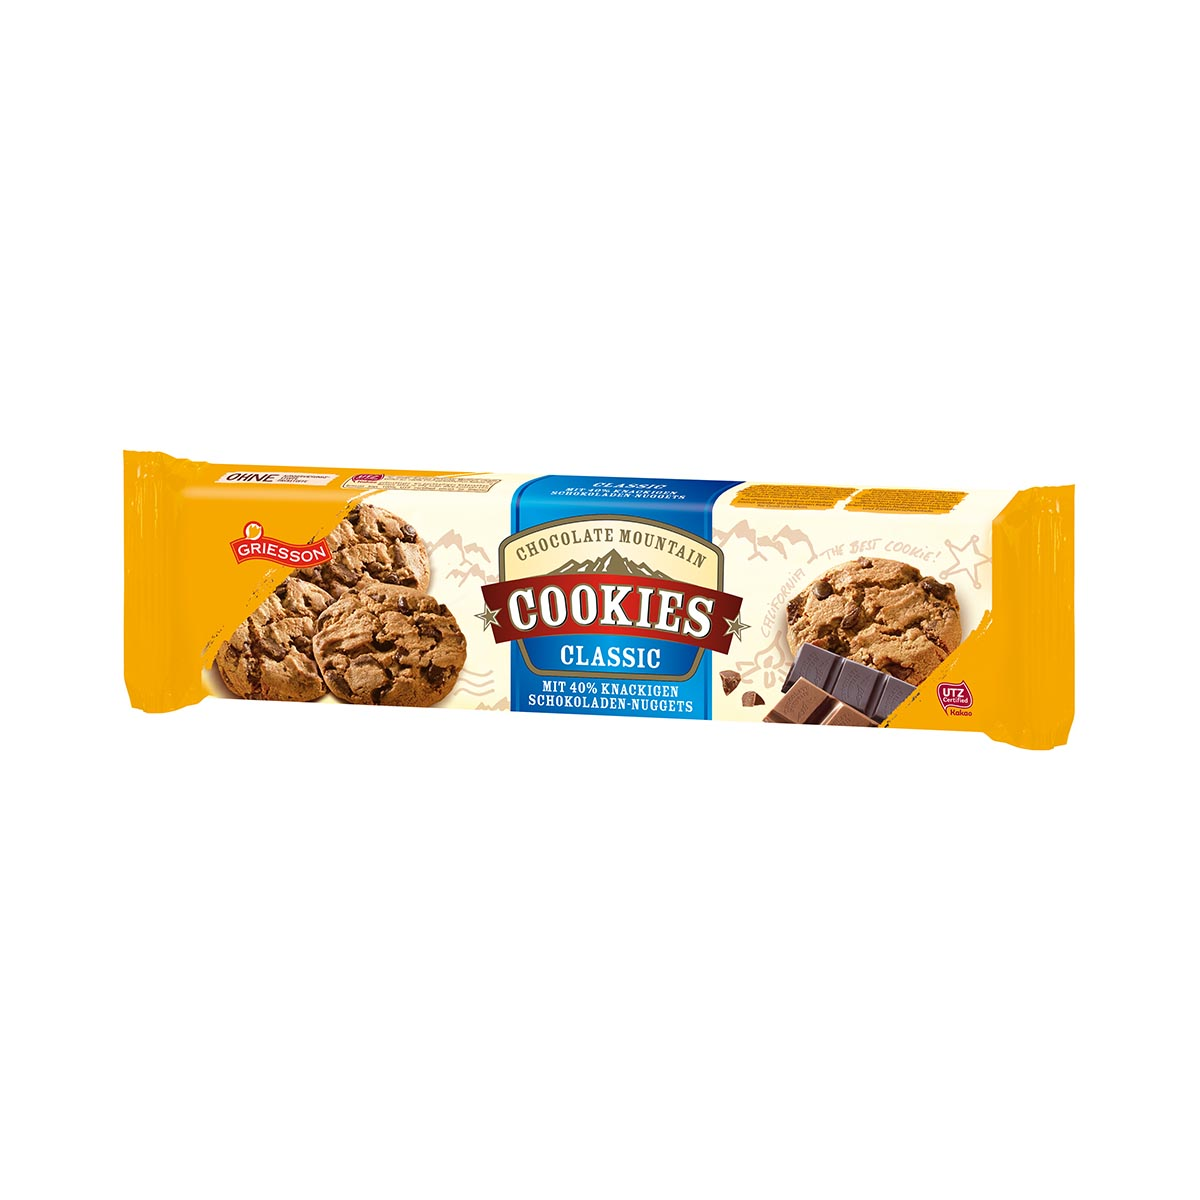 Griesson Chocolate Mountain Cookies